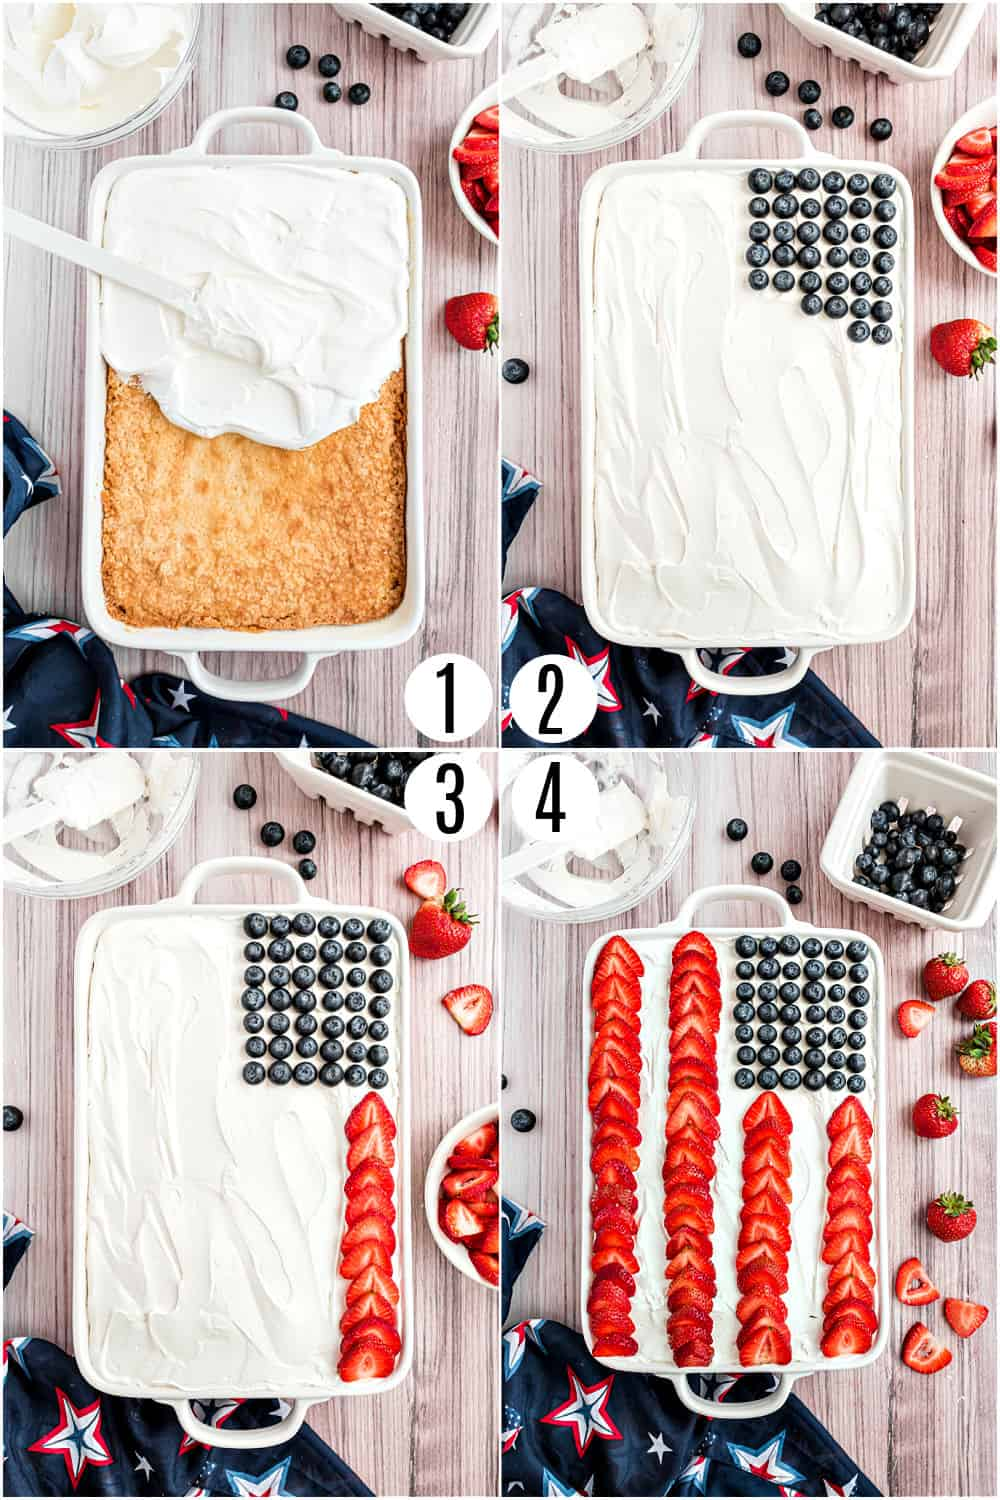 Step by step photos showing how to assemble a flag cake.